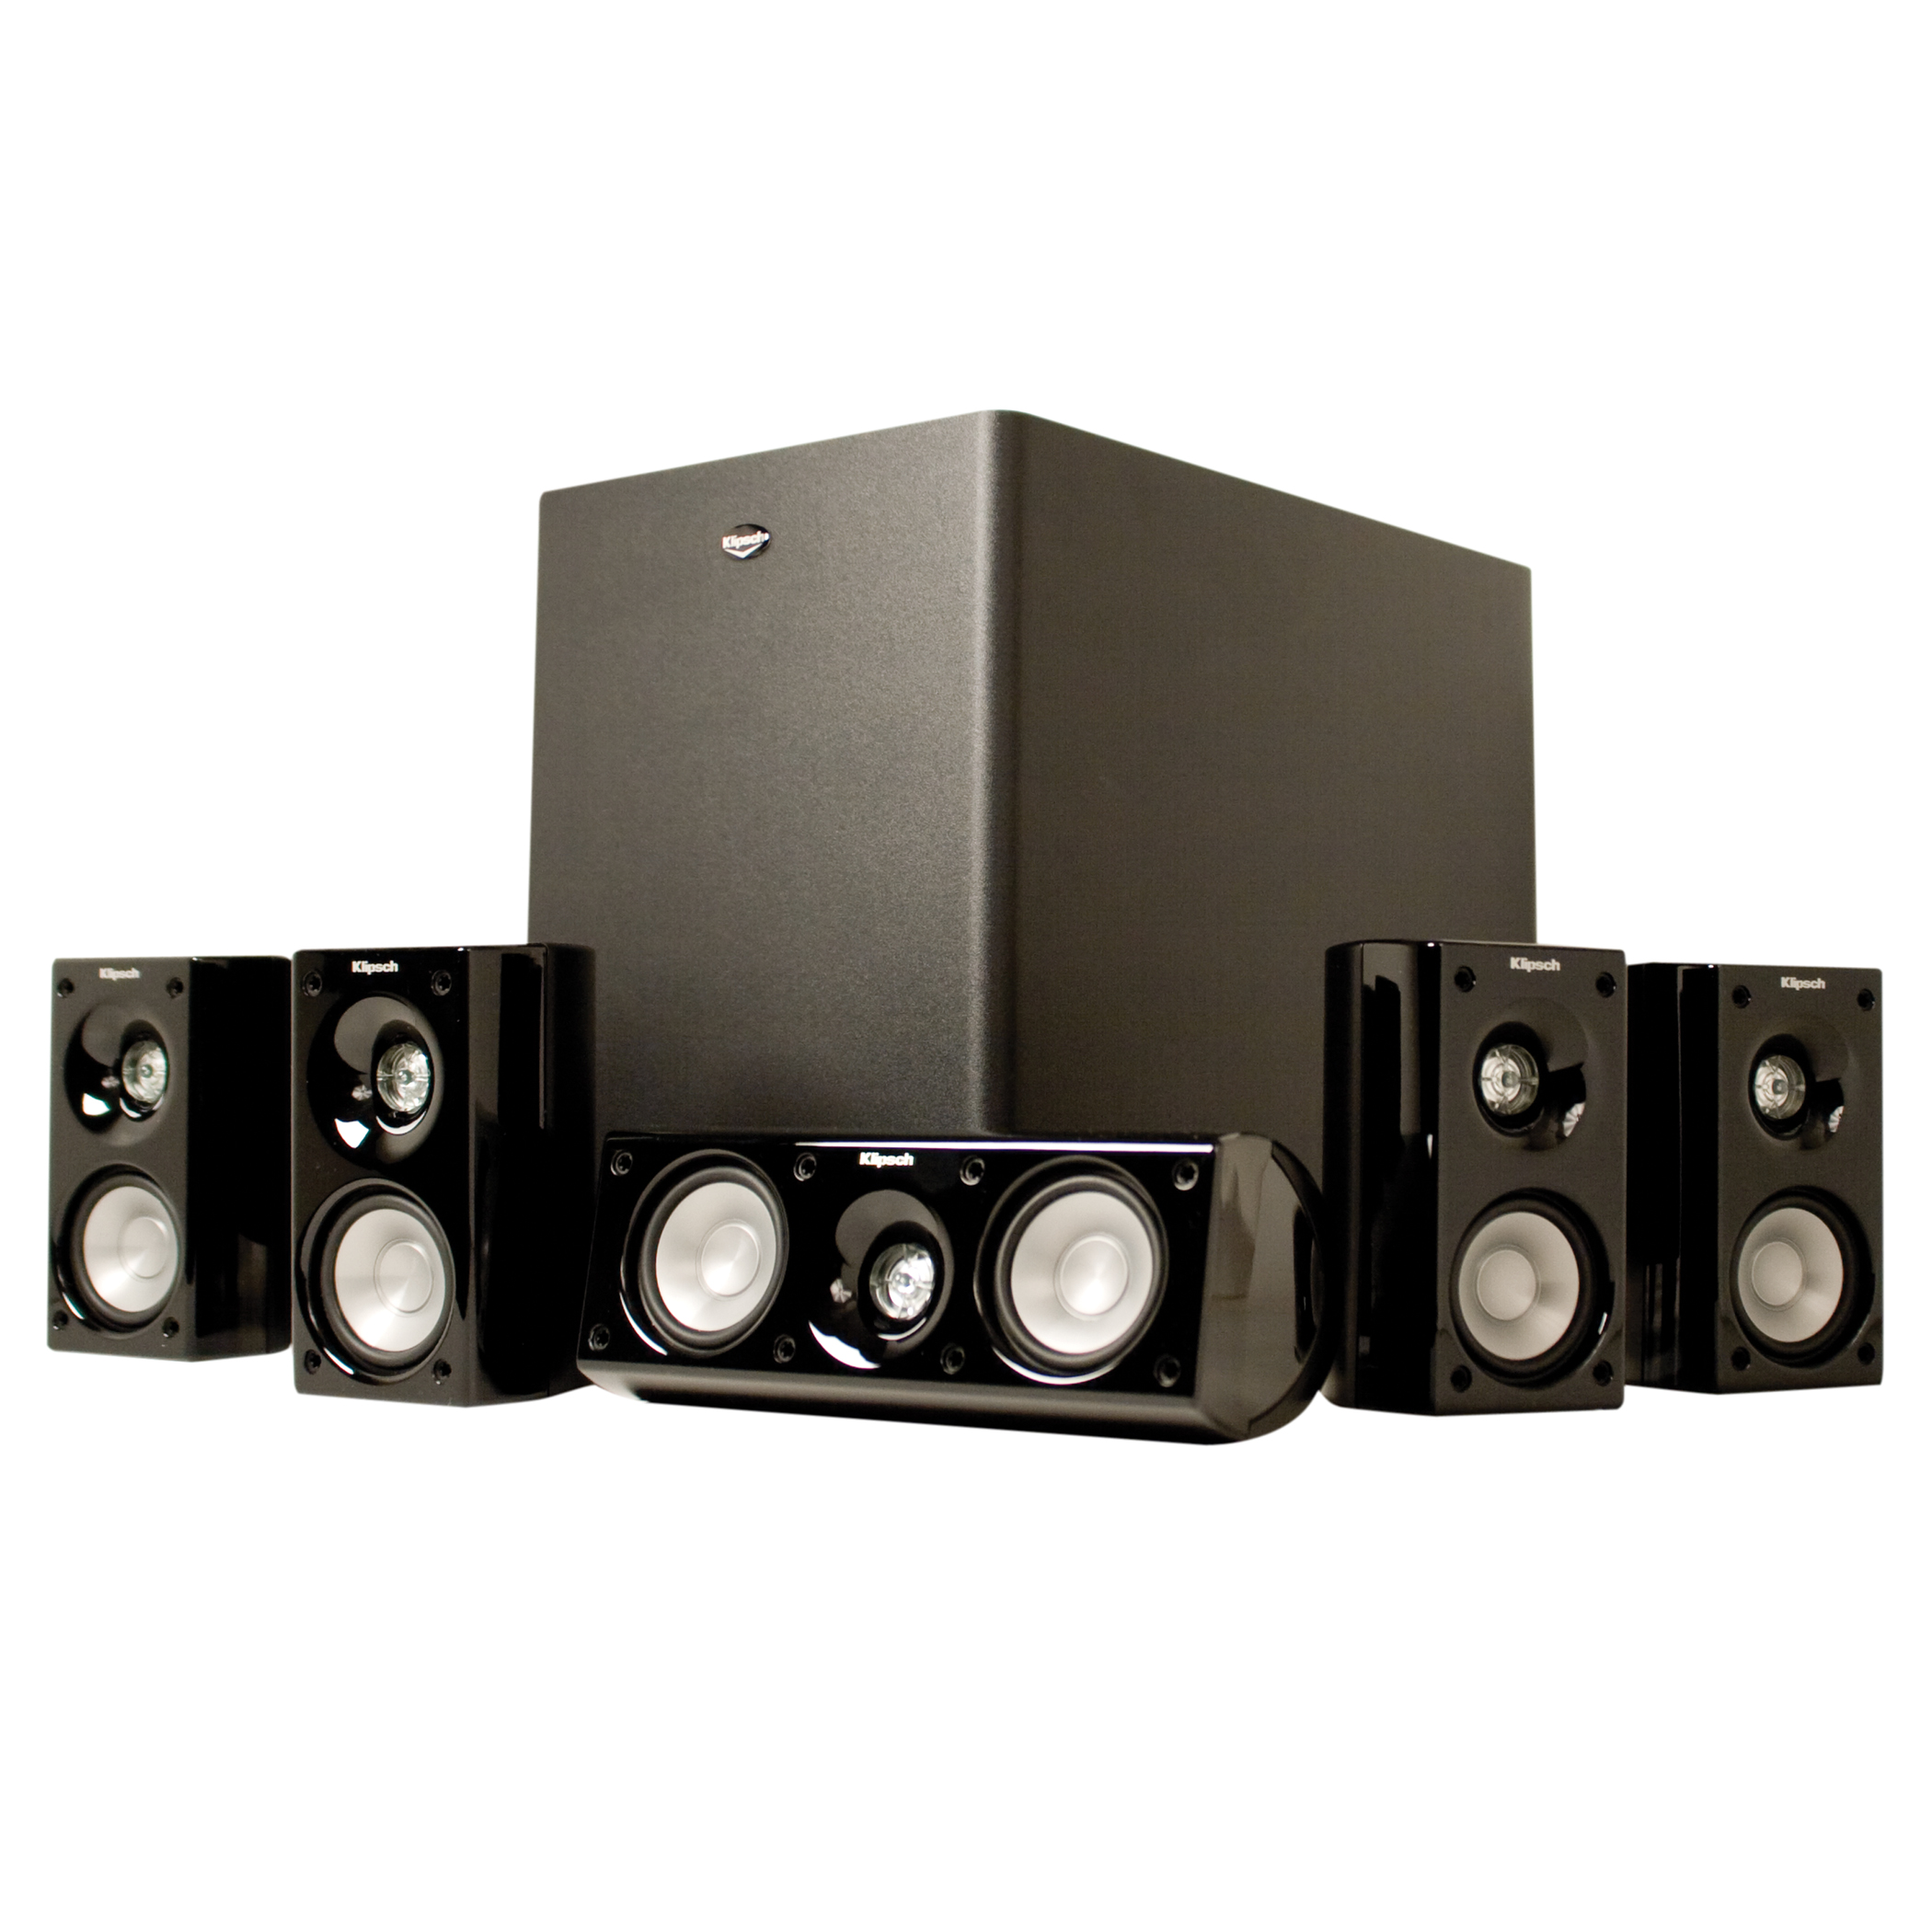 Bose Sound Systems Wireless Home Theater